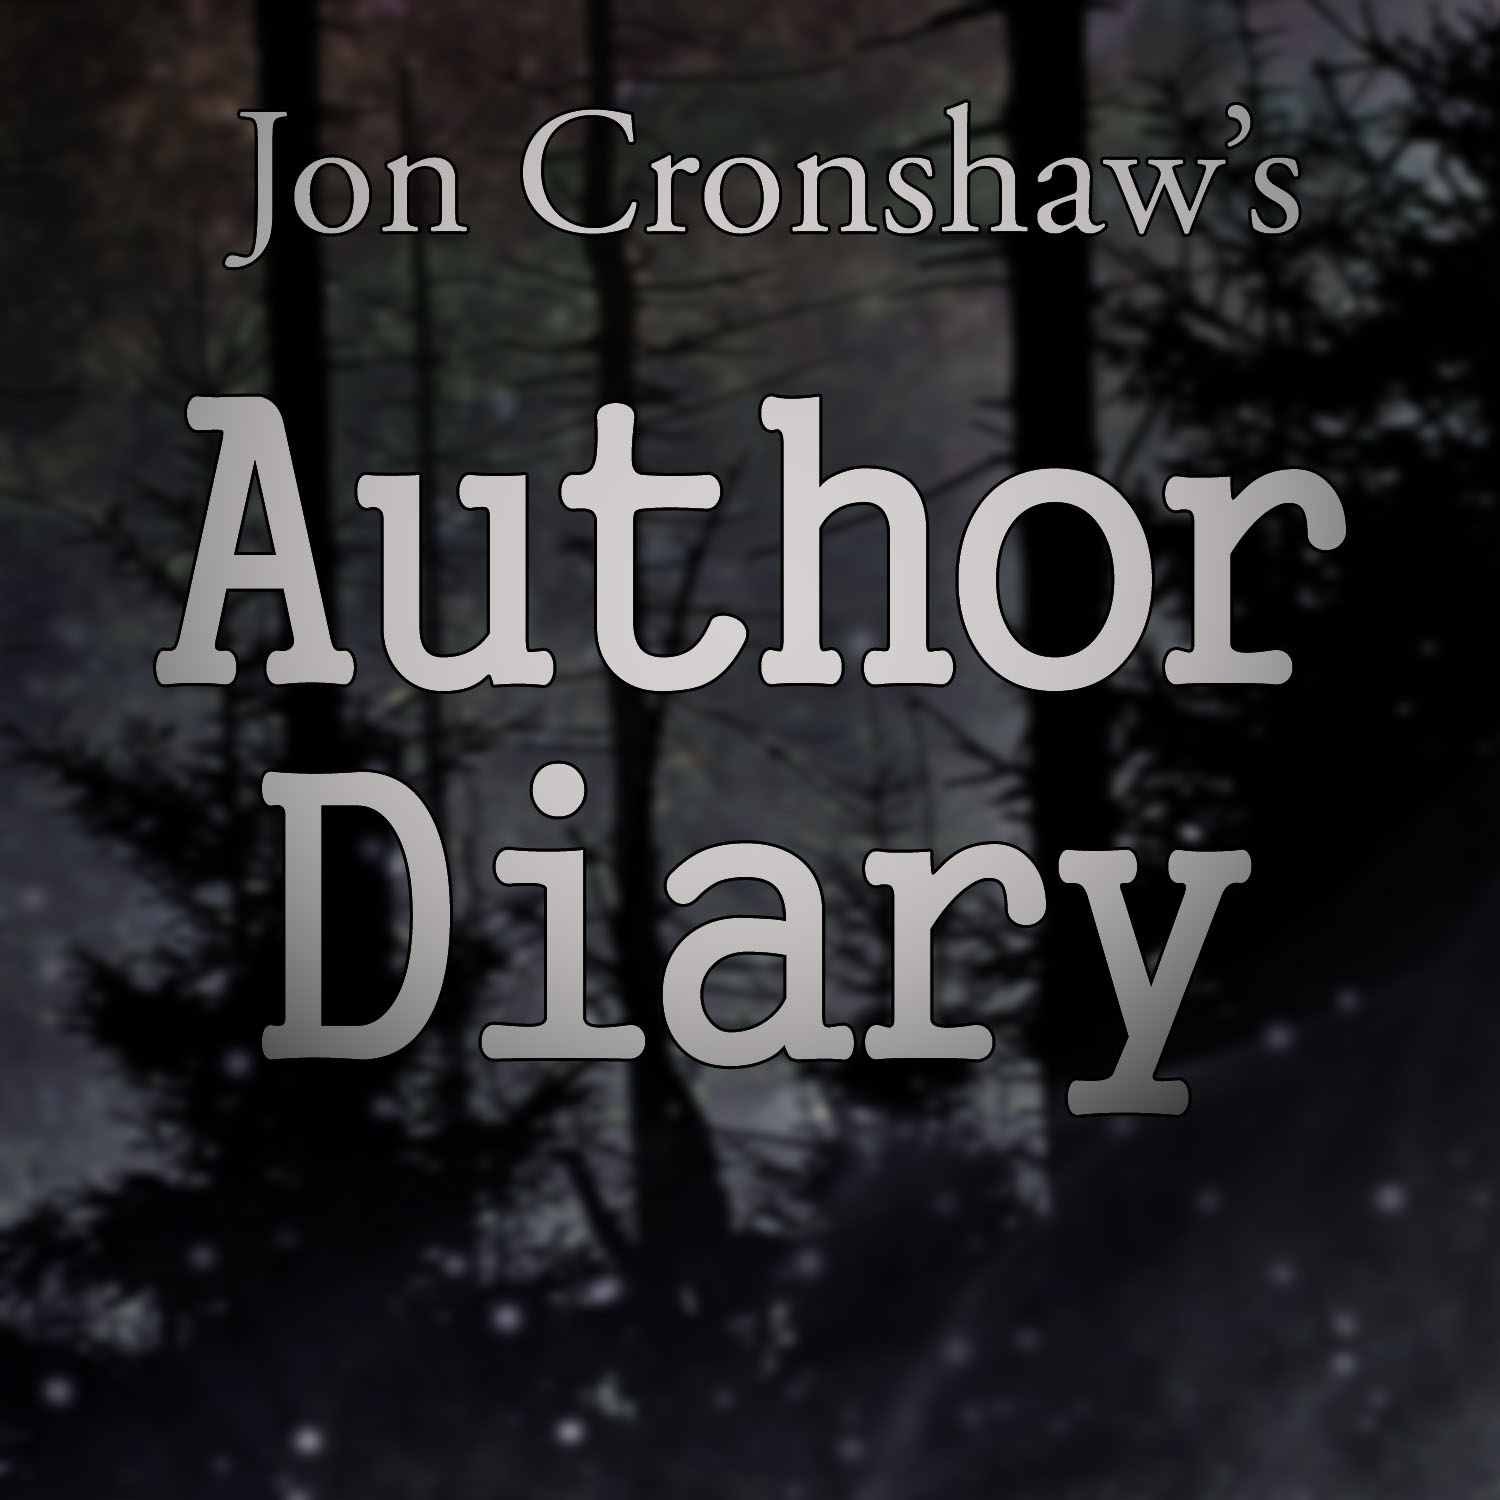 Jon's Author Diary - 068 - January 20, 2019